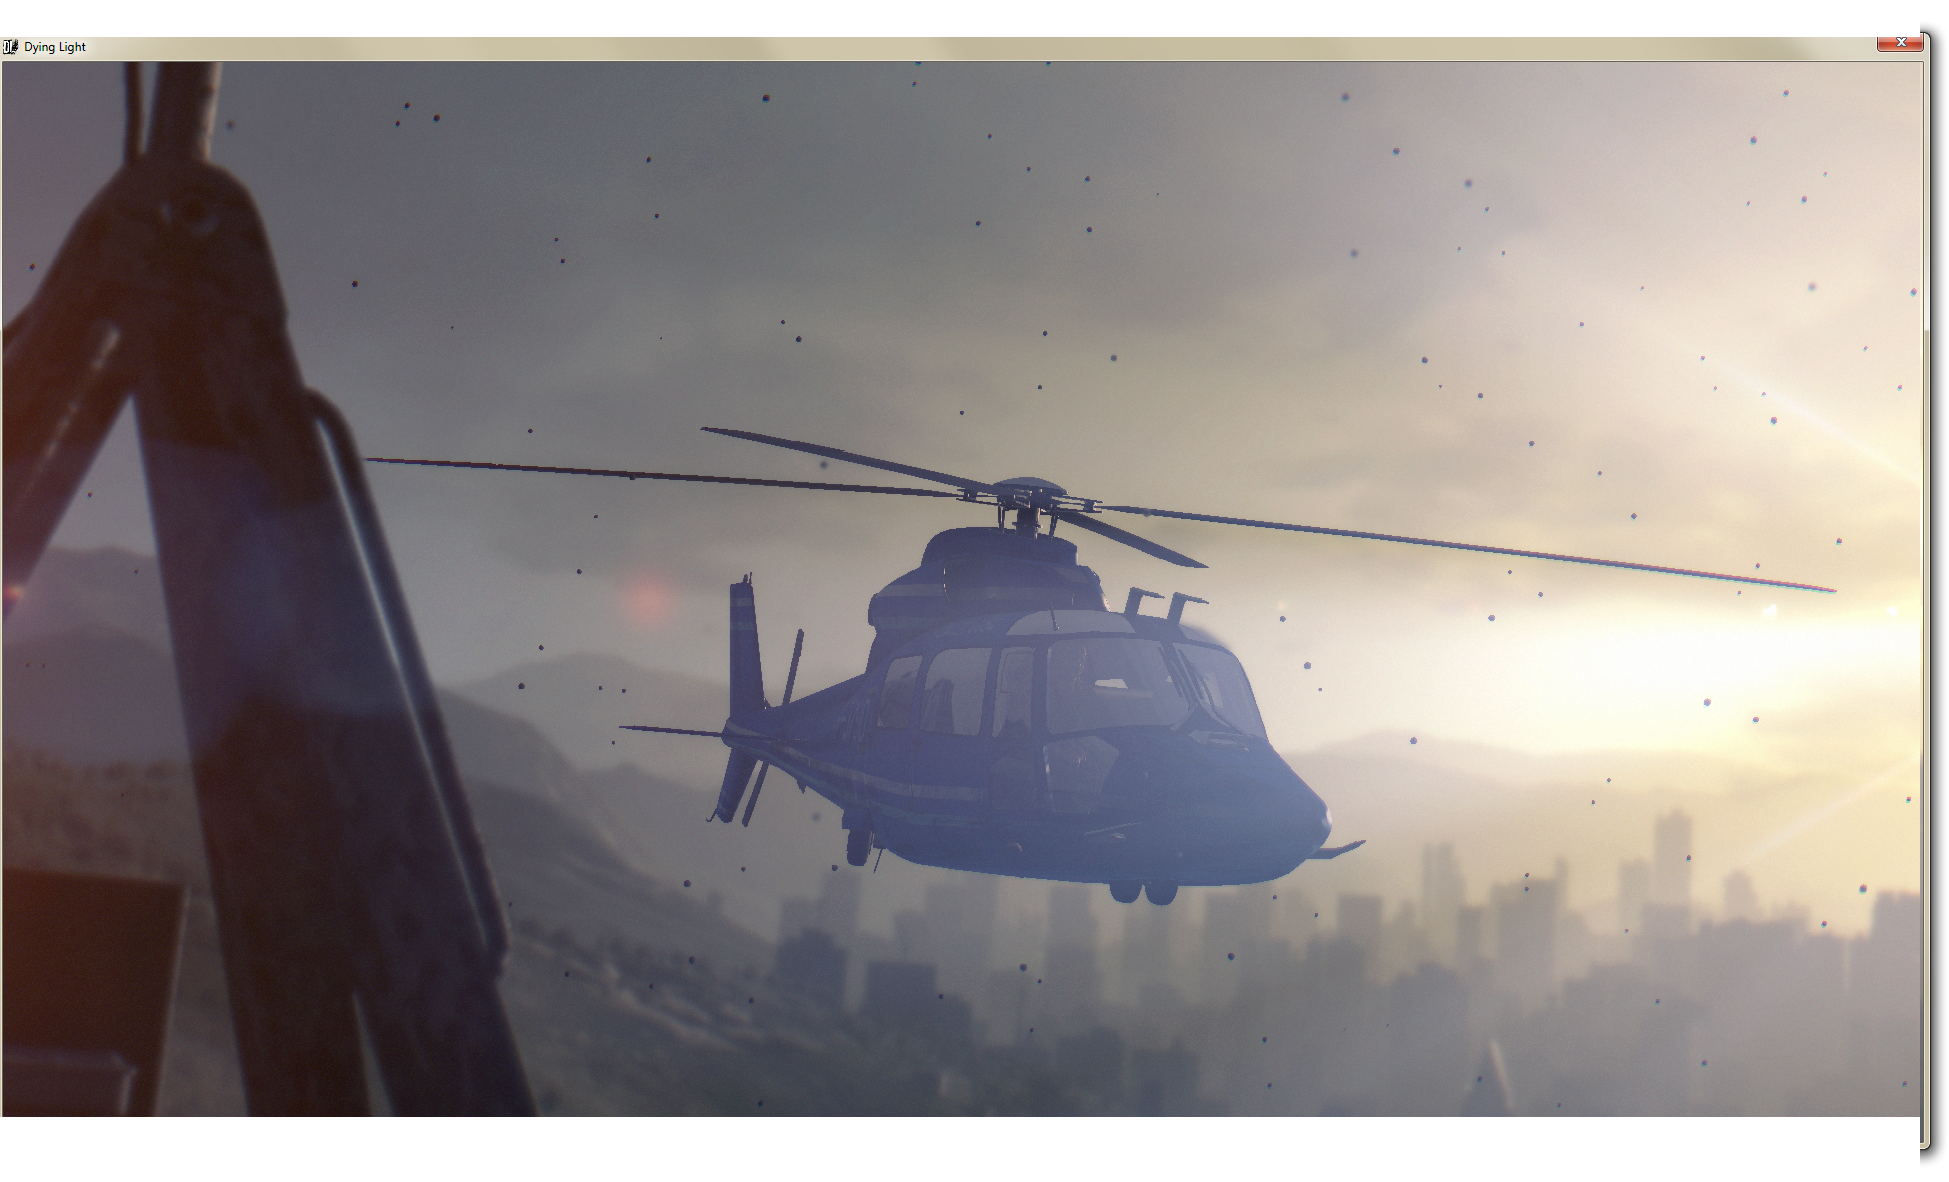 2015-02-06 16-04-11 Dying Light